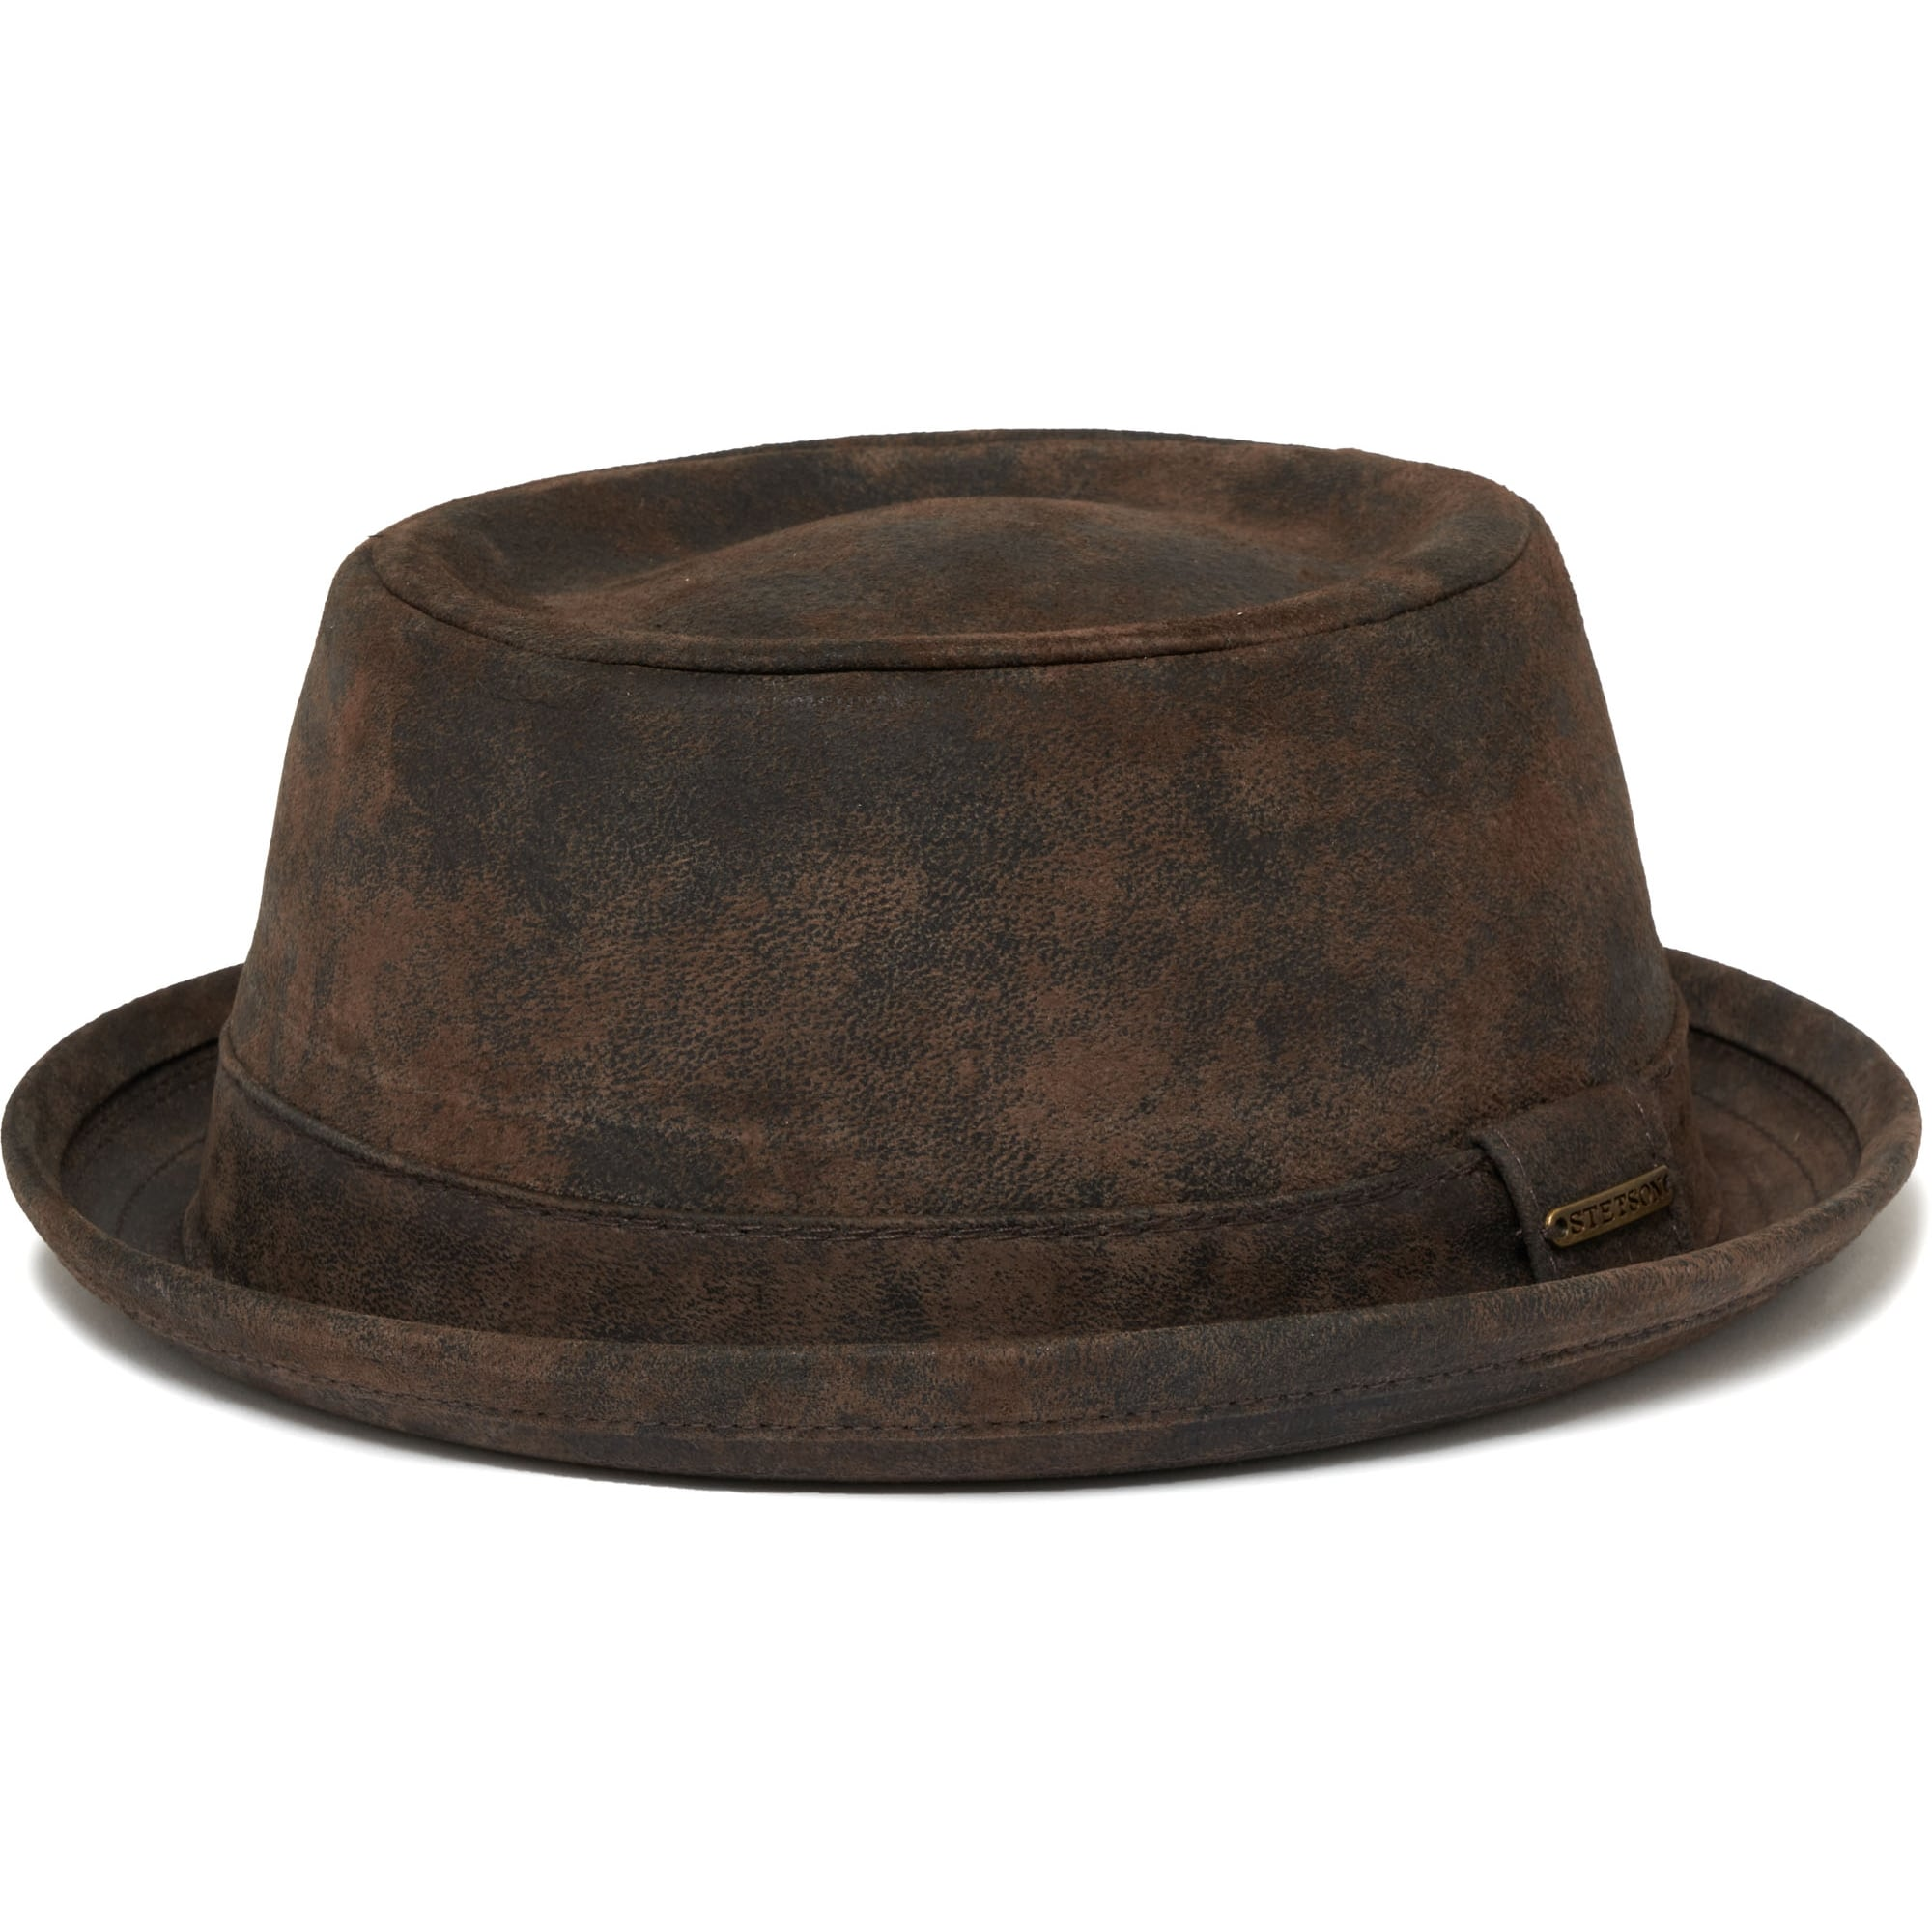 6c7e429d1 Odenton Pork Pie Cloth Hat- Brown